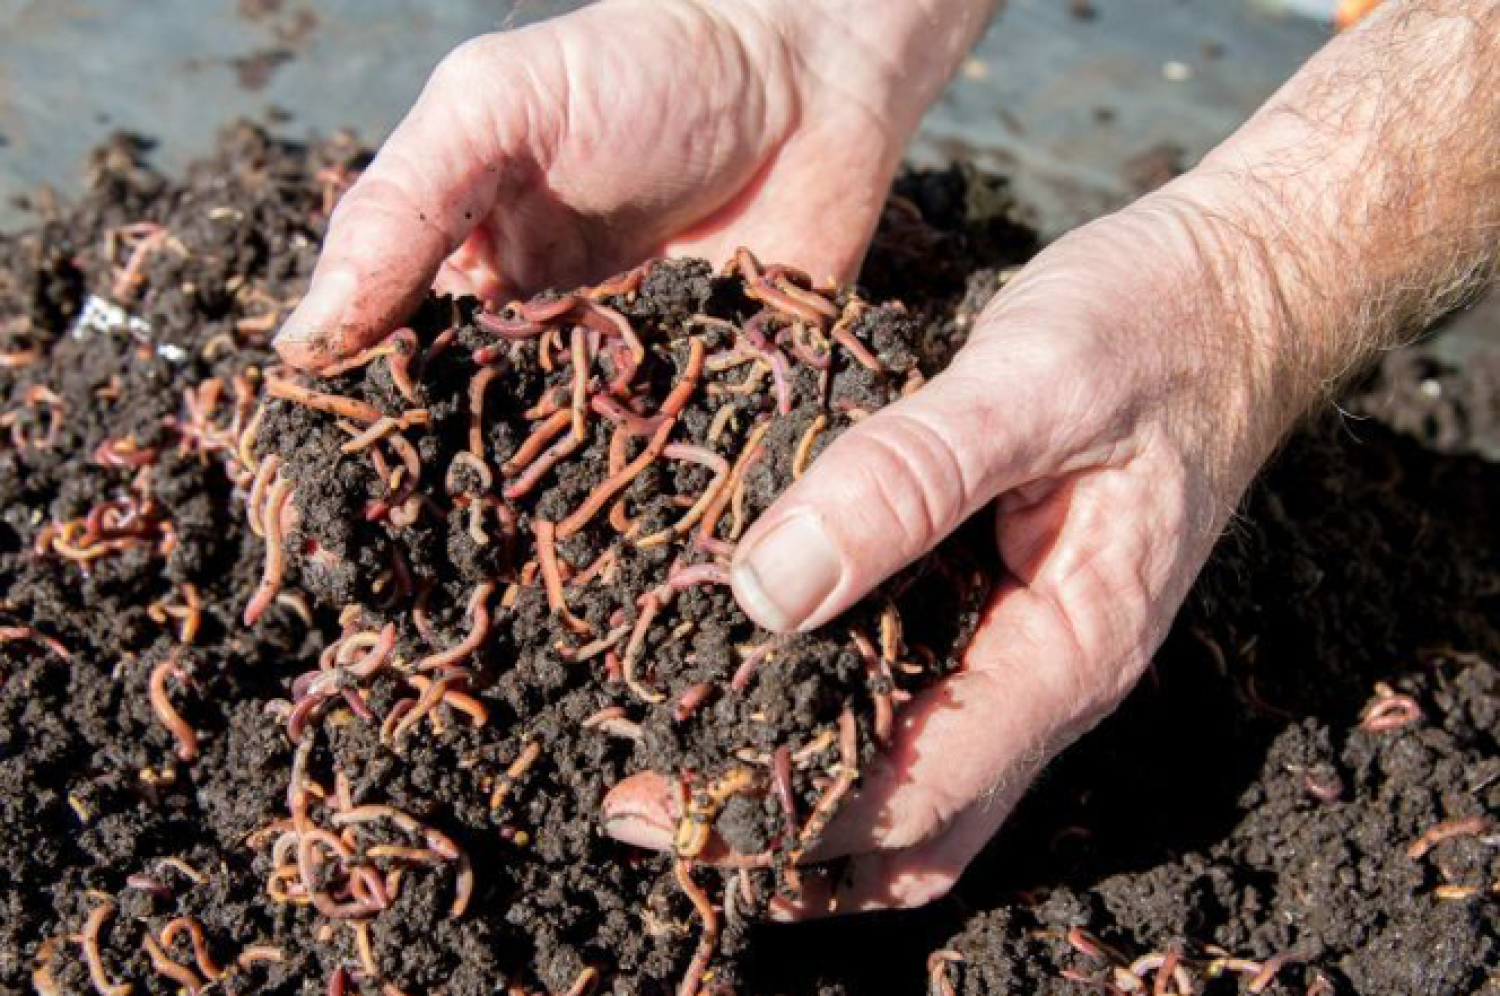 Worms in hand from great soil